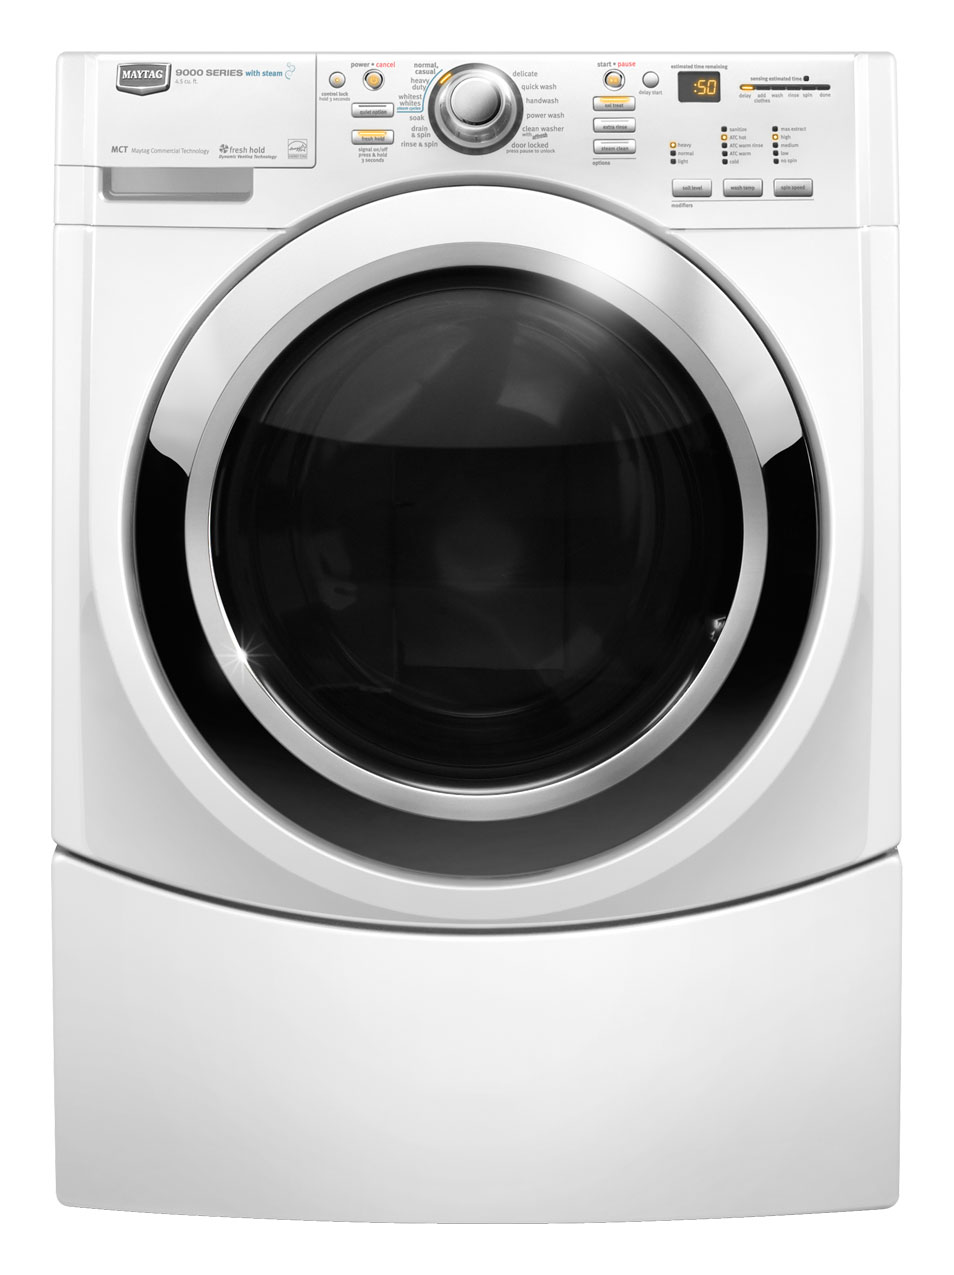 Maytag Performance 3.9 cu ft High-Efficiency Front-Load Washers (White) ENERGY STAR (Model #: MHWE950WW)